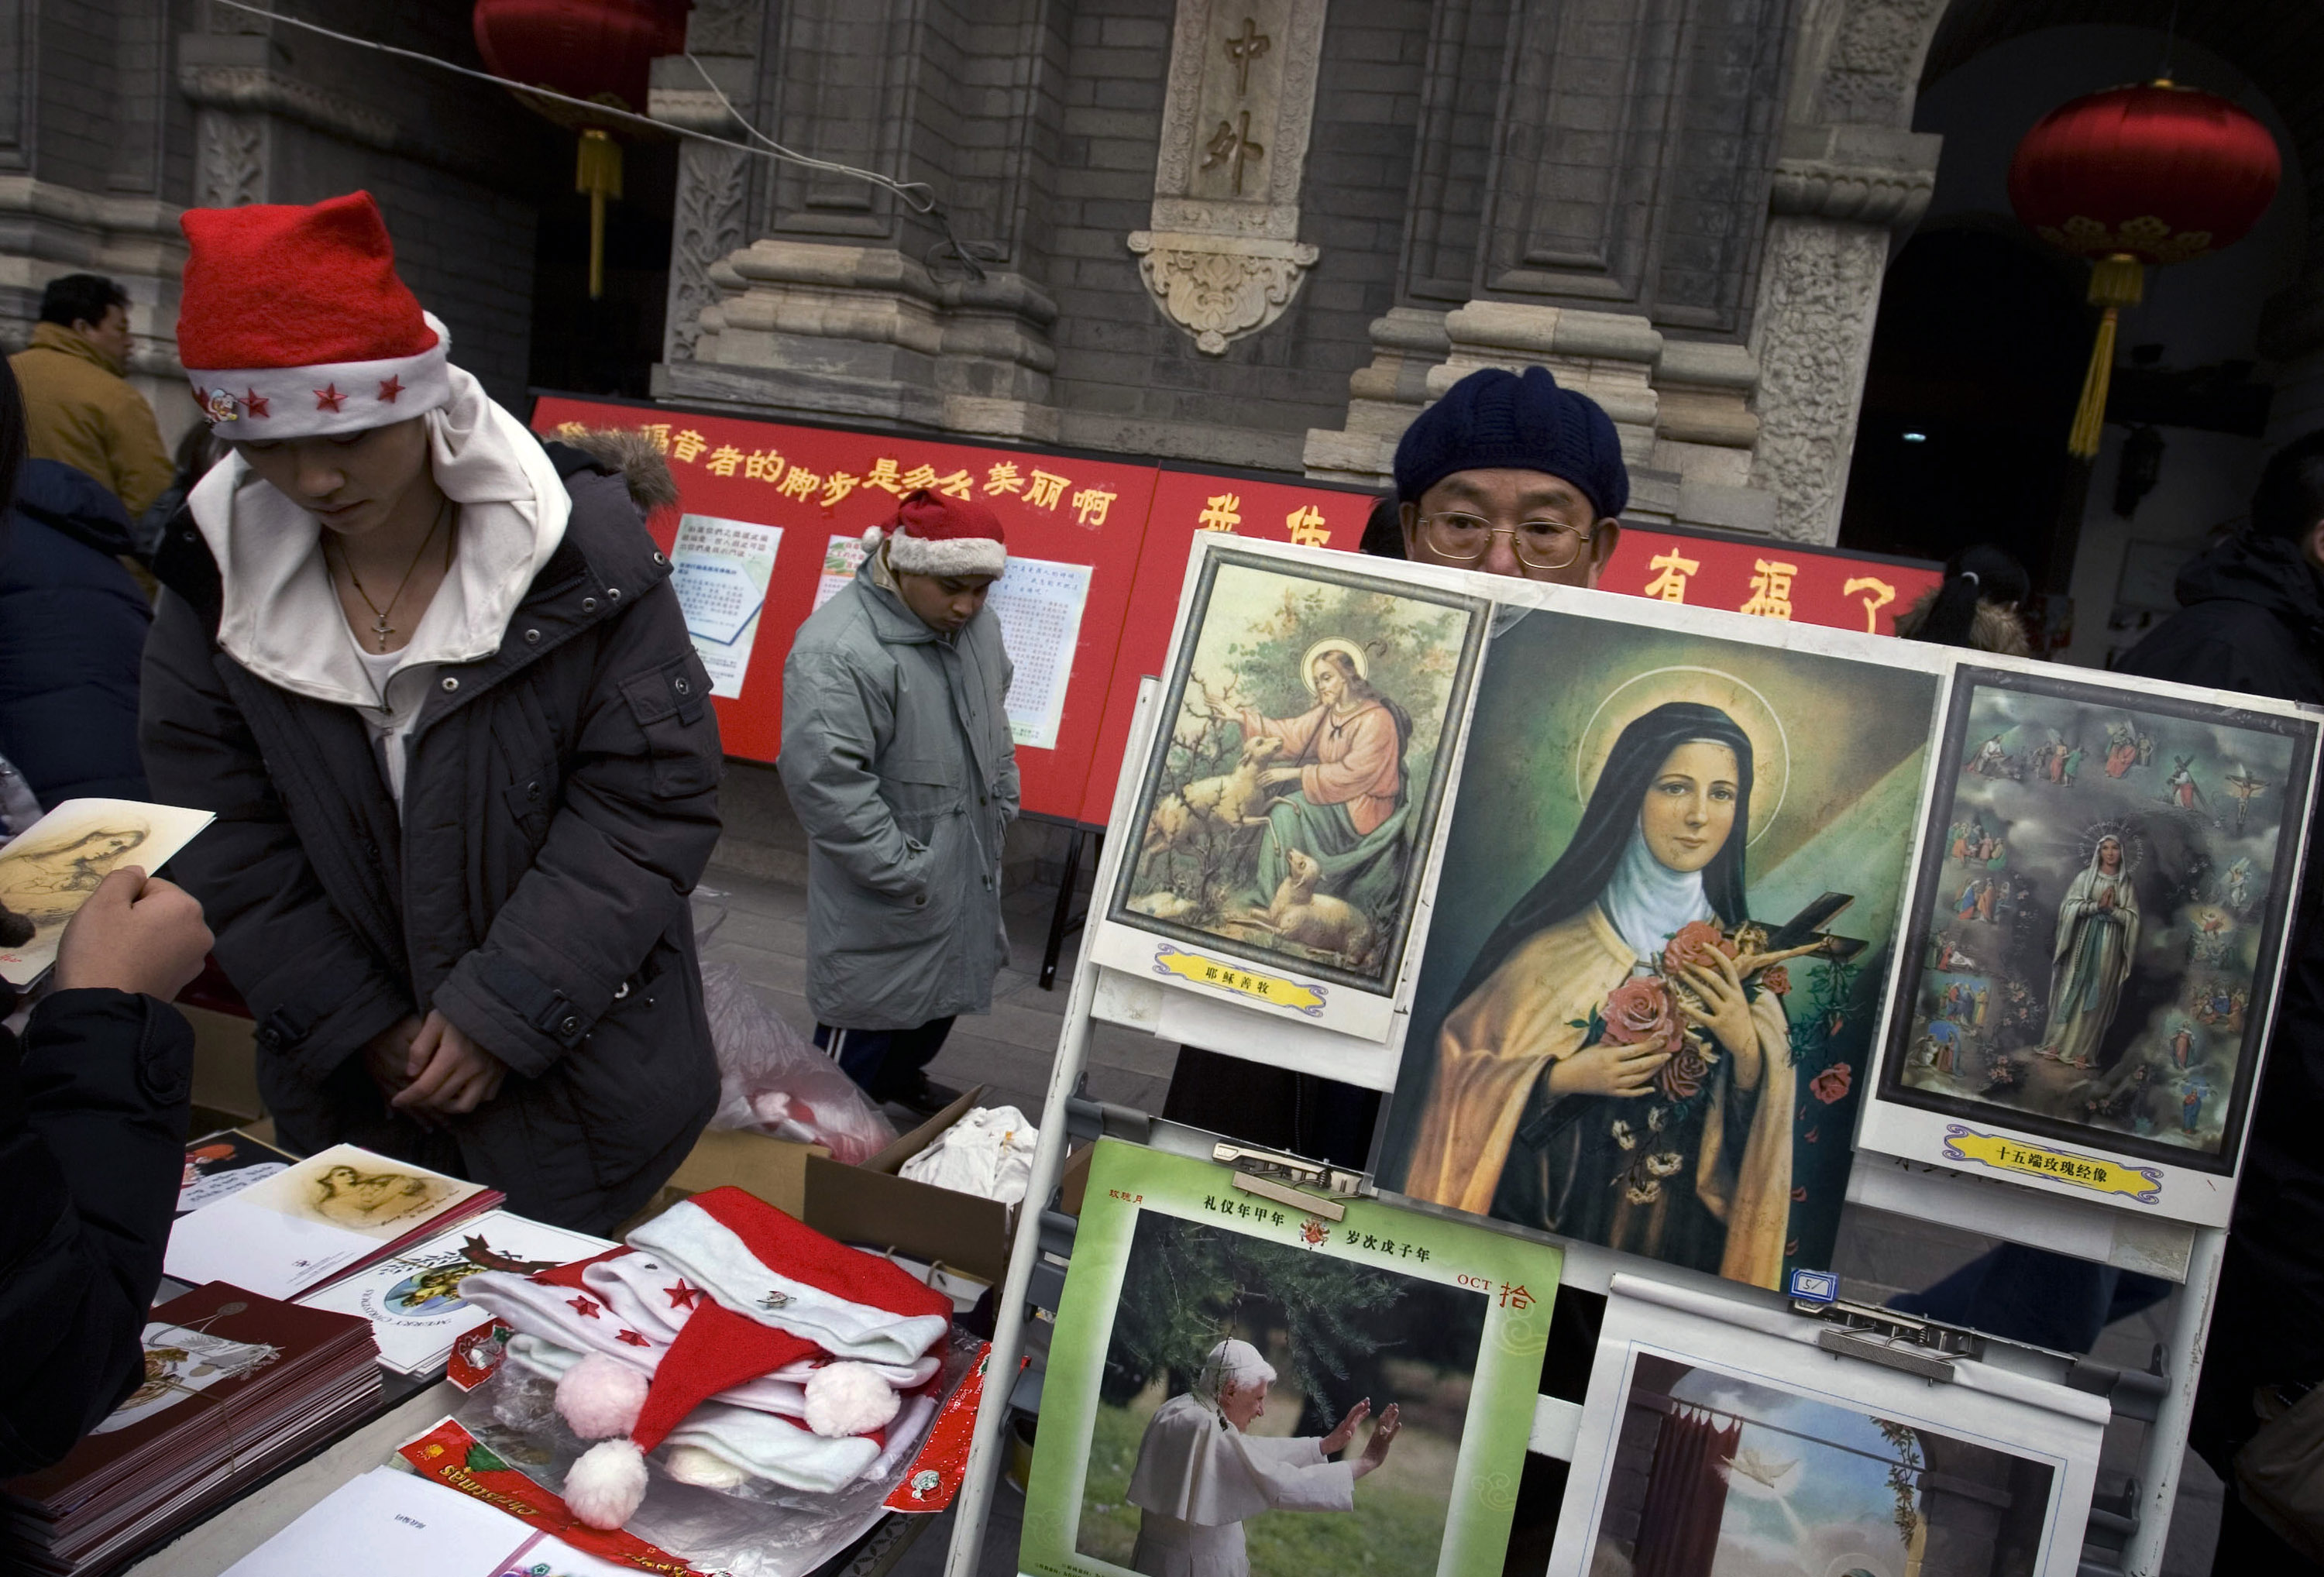 Church workers sell religious memorabilia outside the church on Christmas Eve in Beijing Monday.